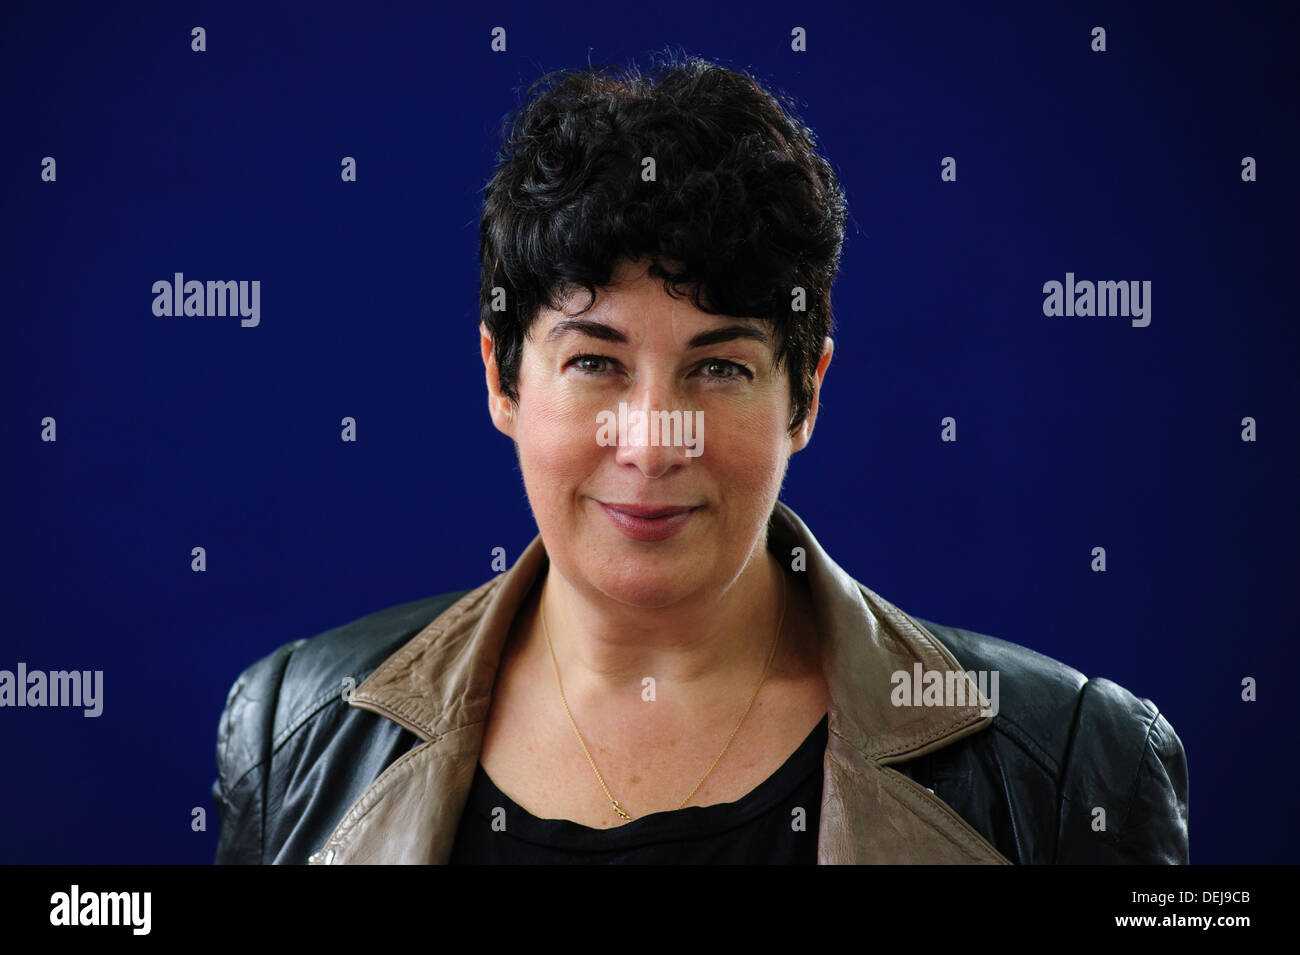 Joanne Harris, British author, attending the Edinburgh International Book Festival, Wednesday 21st August 2013. - Stock Image